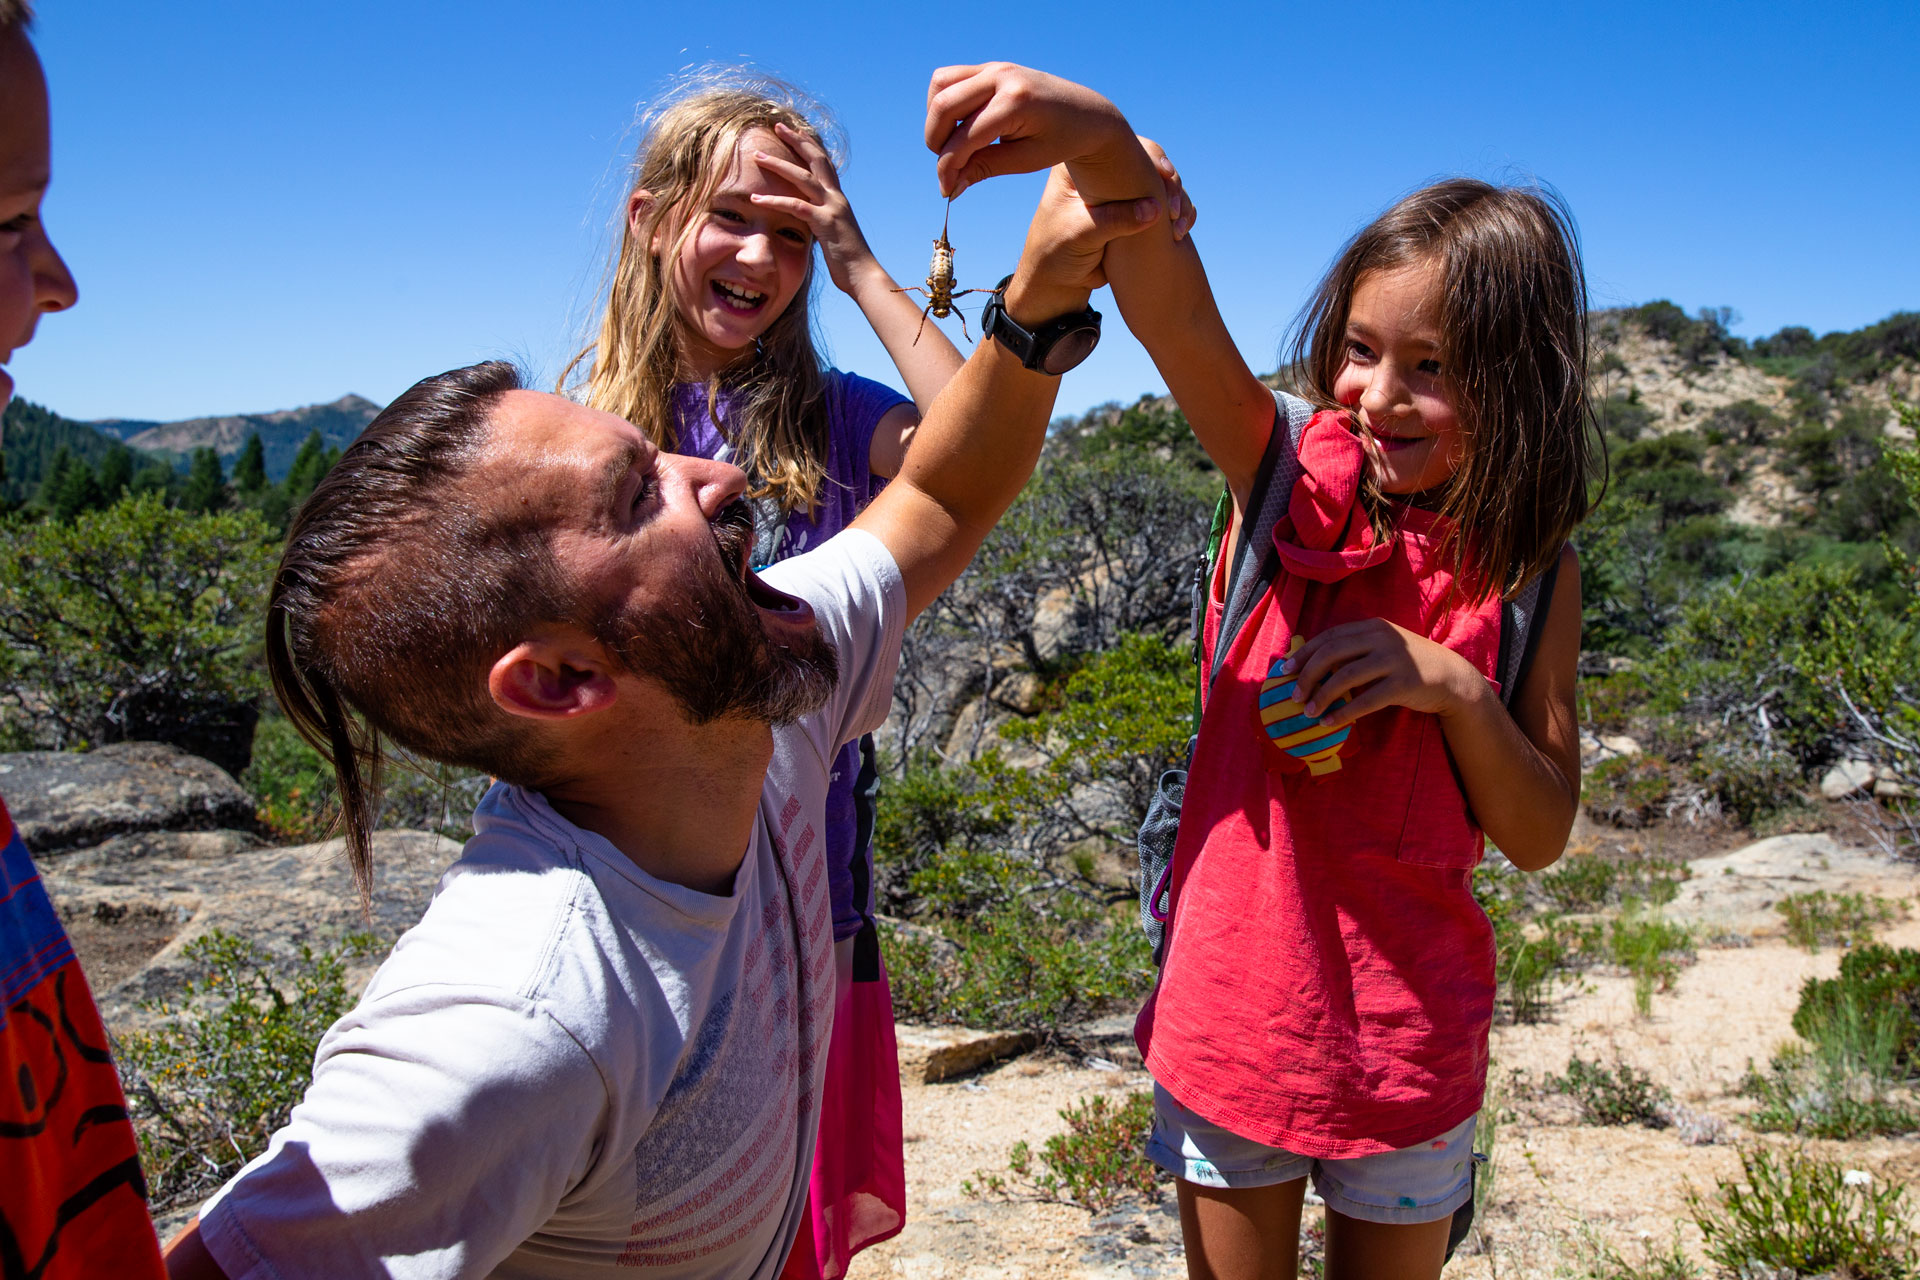 dad pretending to eat a bug while daughter holds int above his head in the mountains